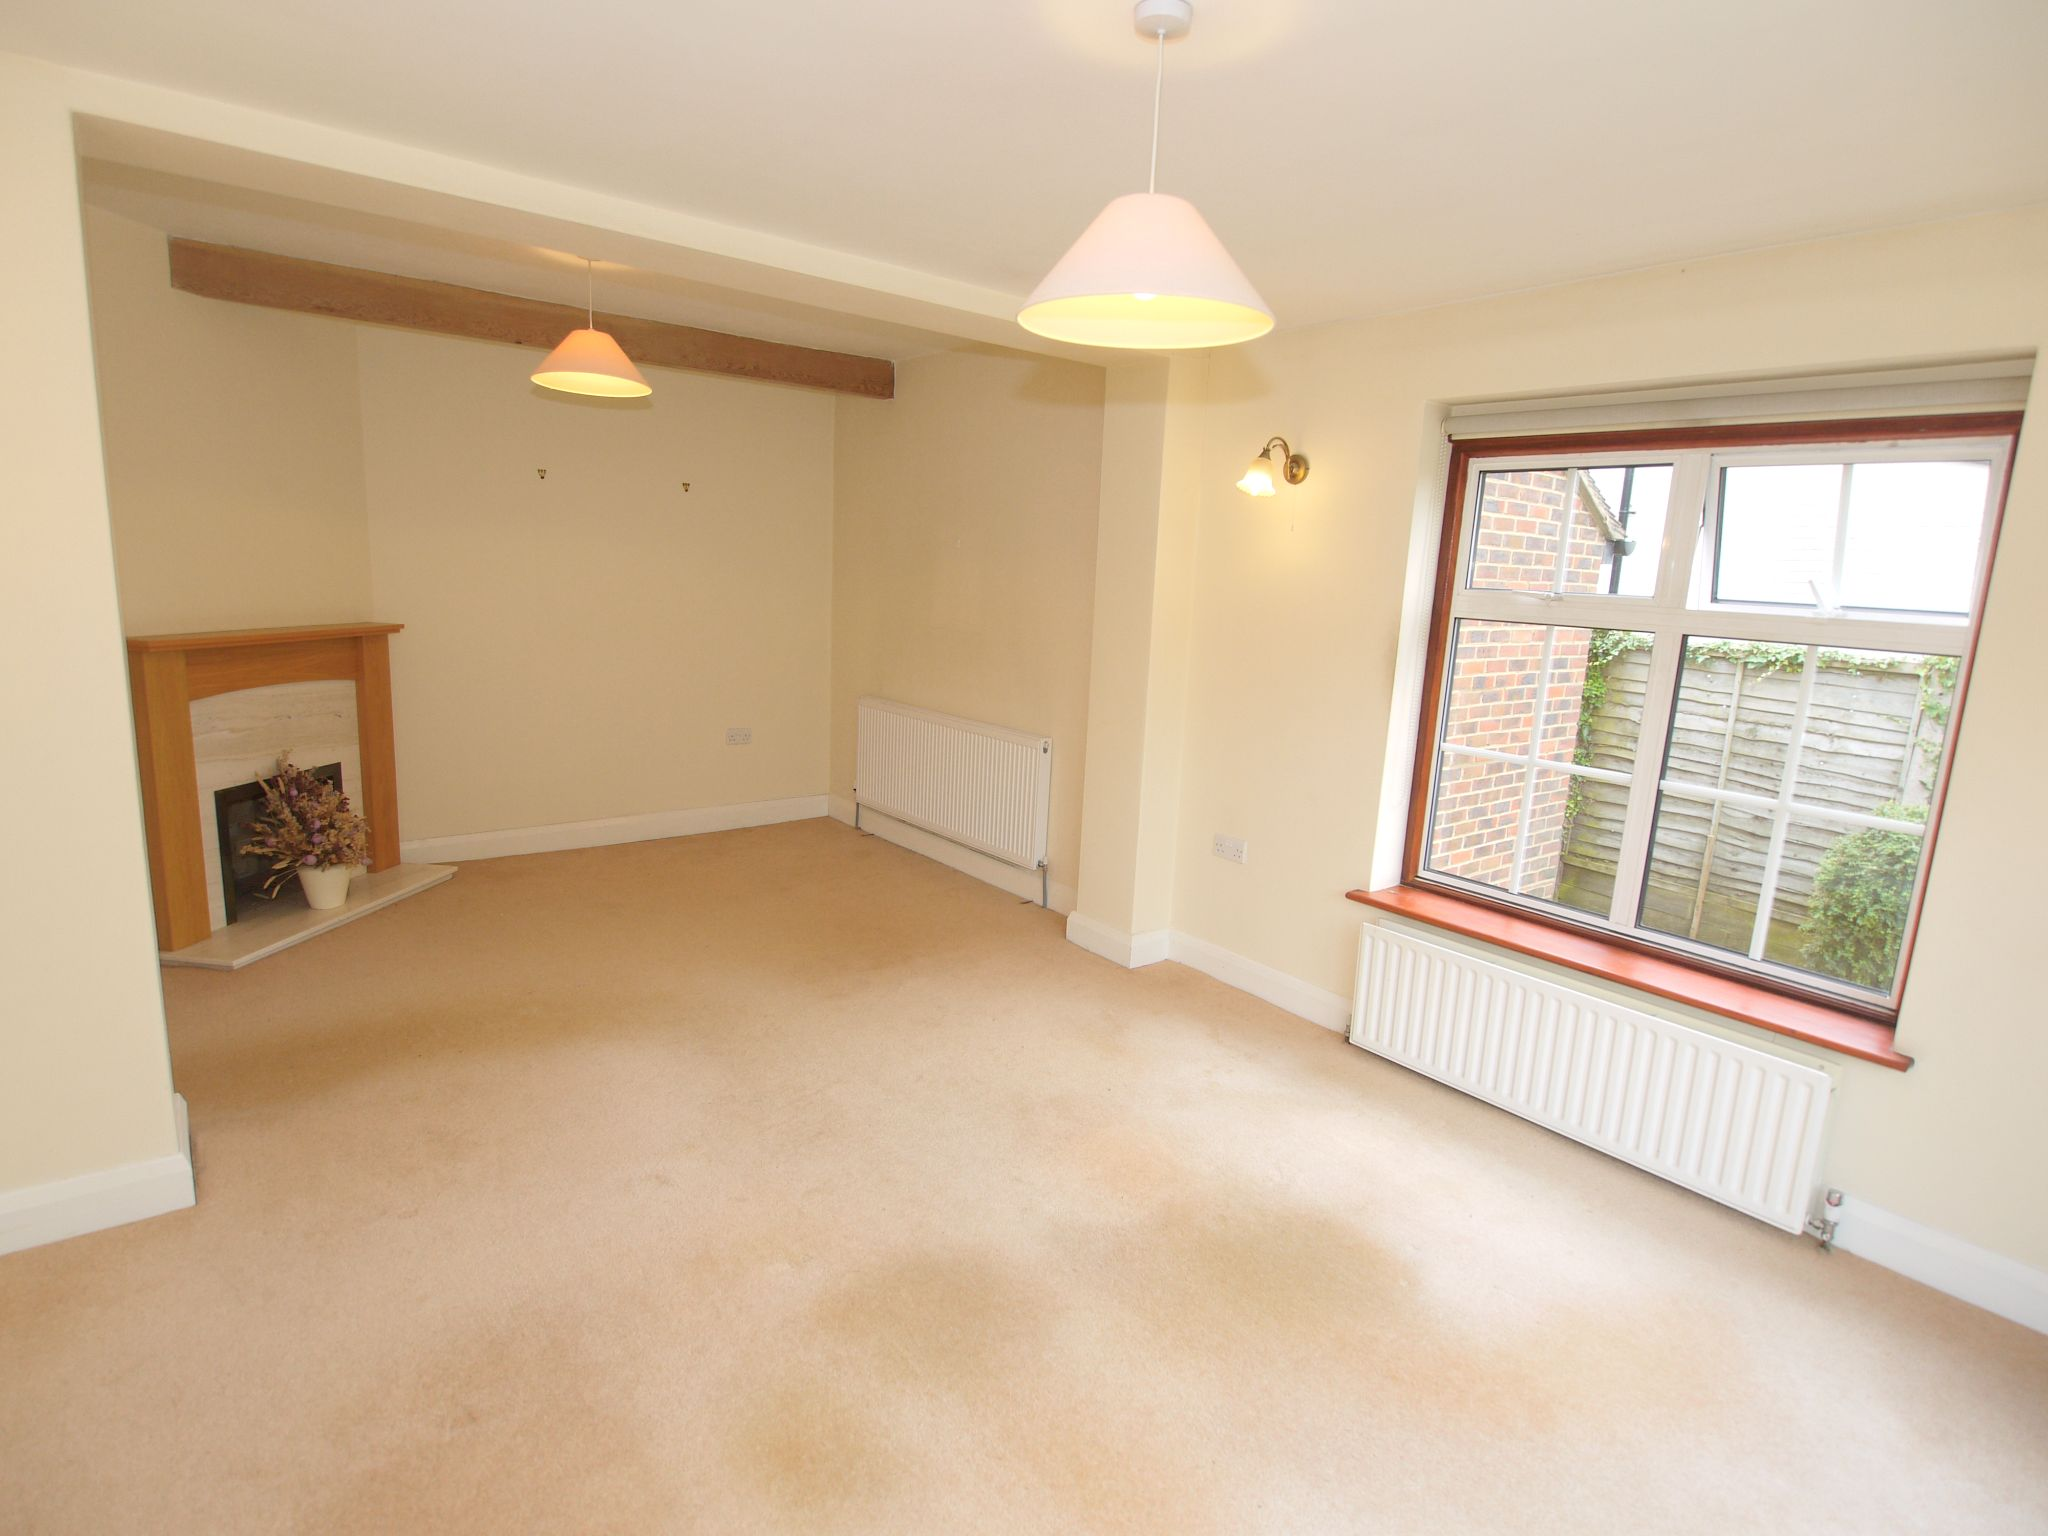 3 bedroom detached house Sale Agreed in Sevenoaks - Photograph 5